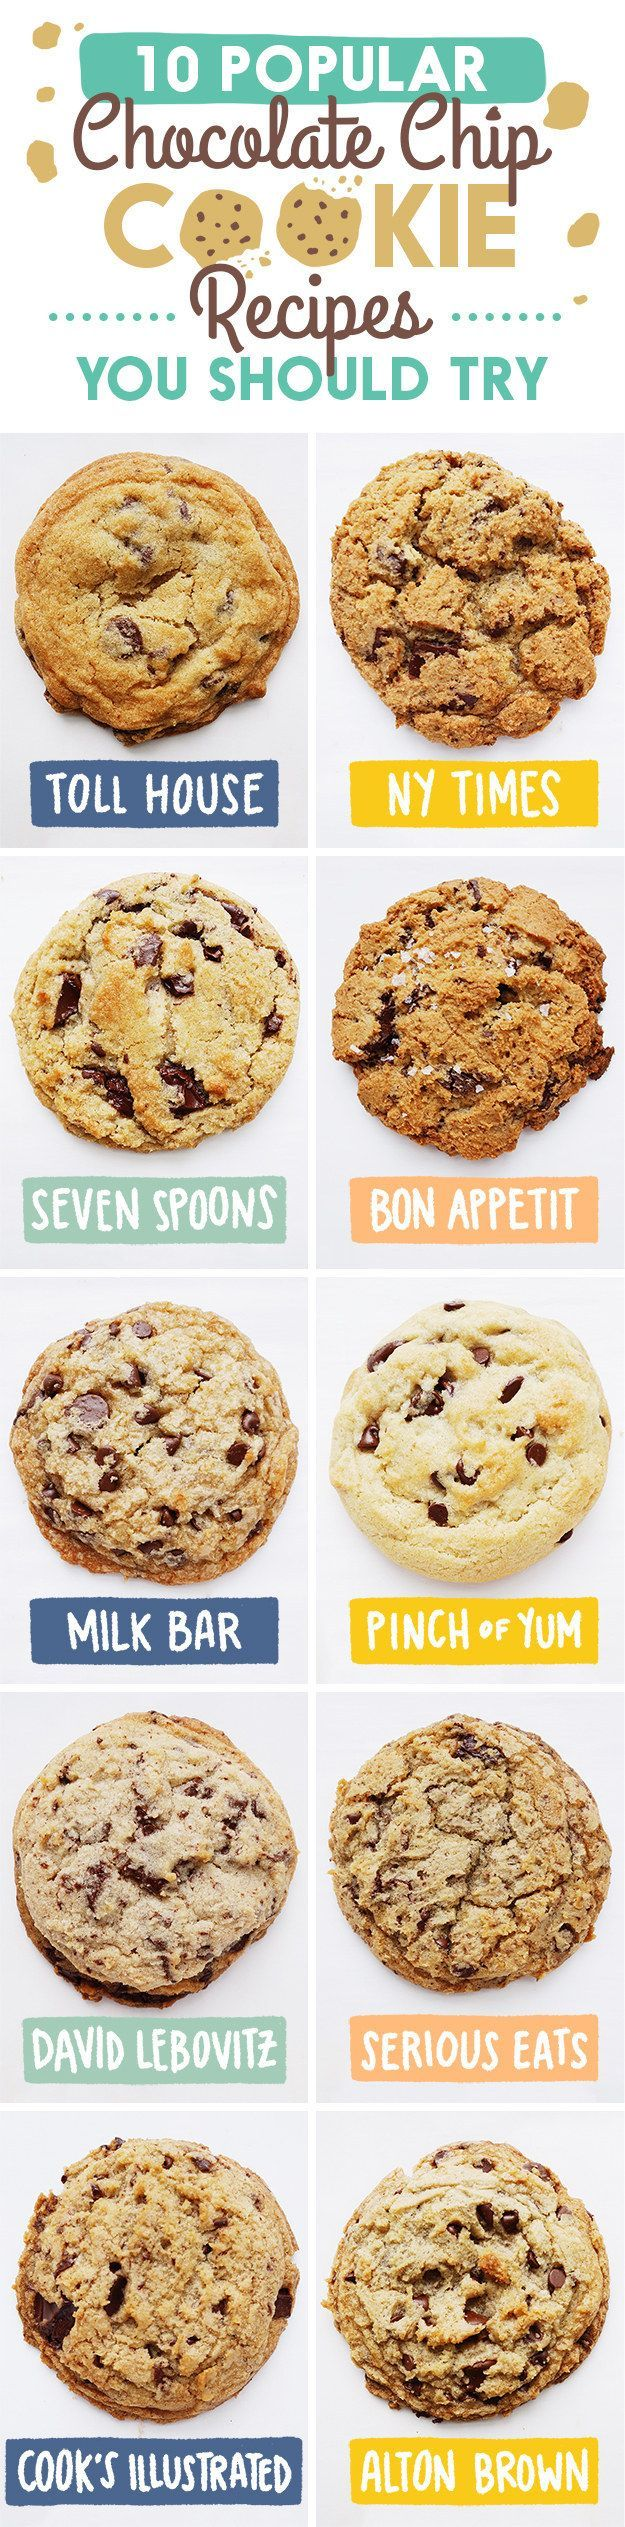 Best 25+ Toll house cookies ideas on Pinterest | Baking chocolate ...